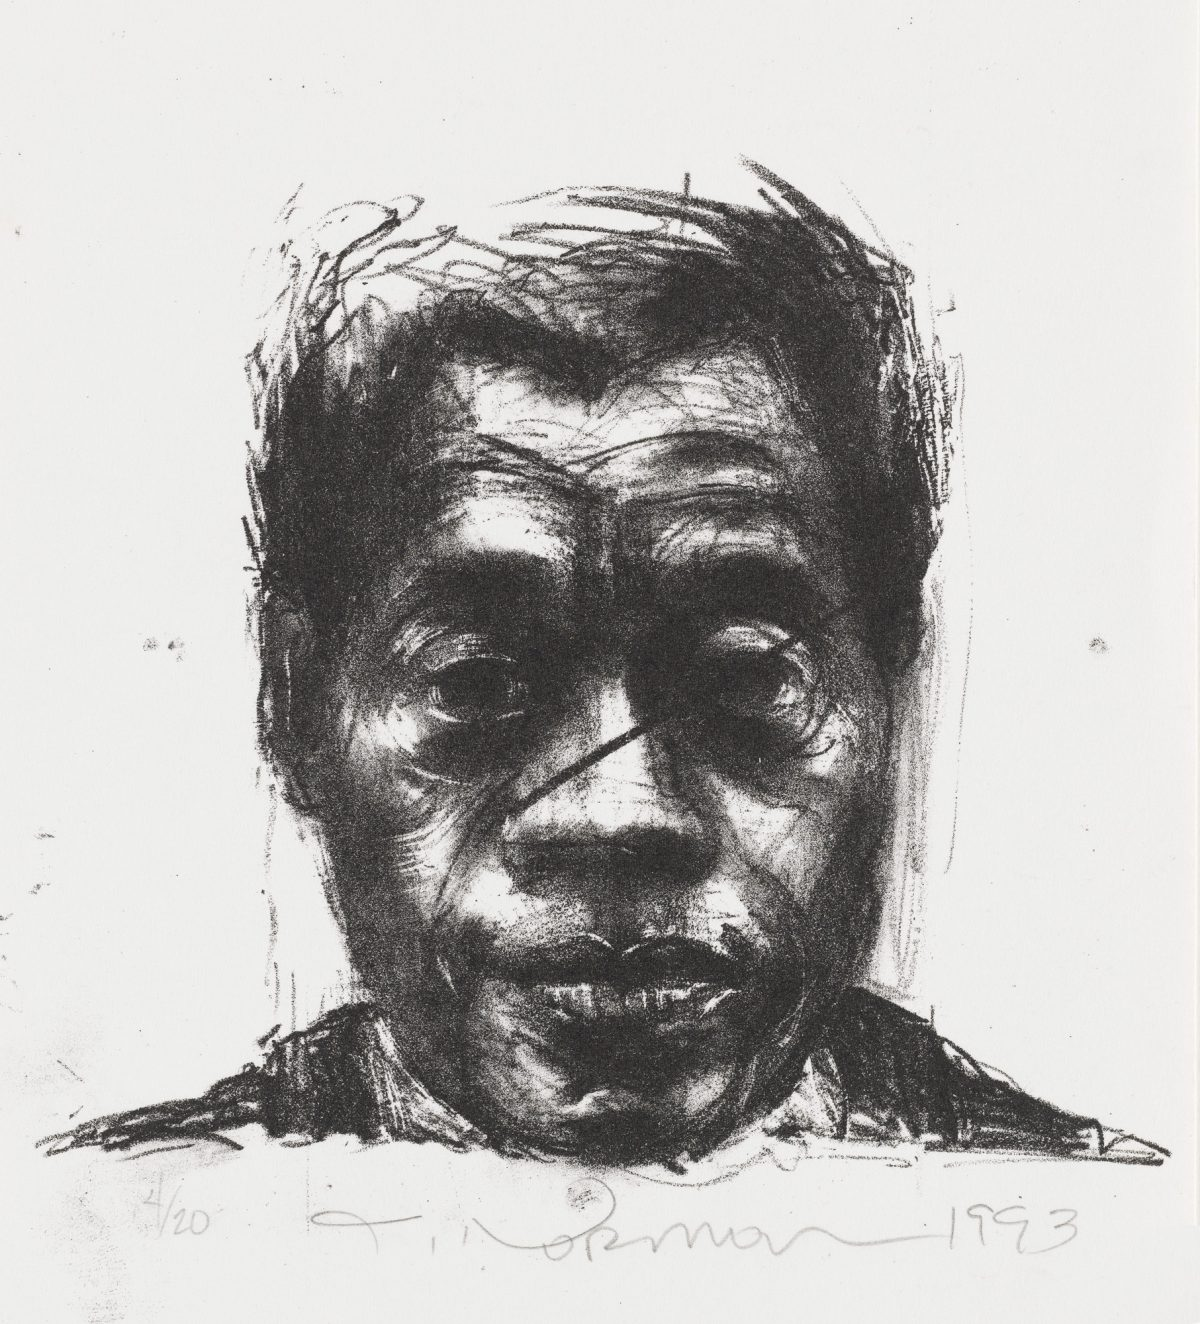 Image of a shaded and richly textured portrait of James Baldwin's shoulders and face